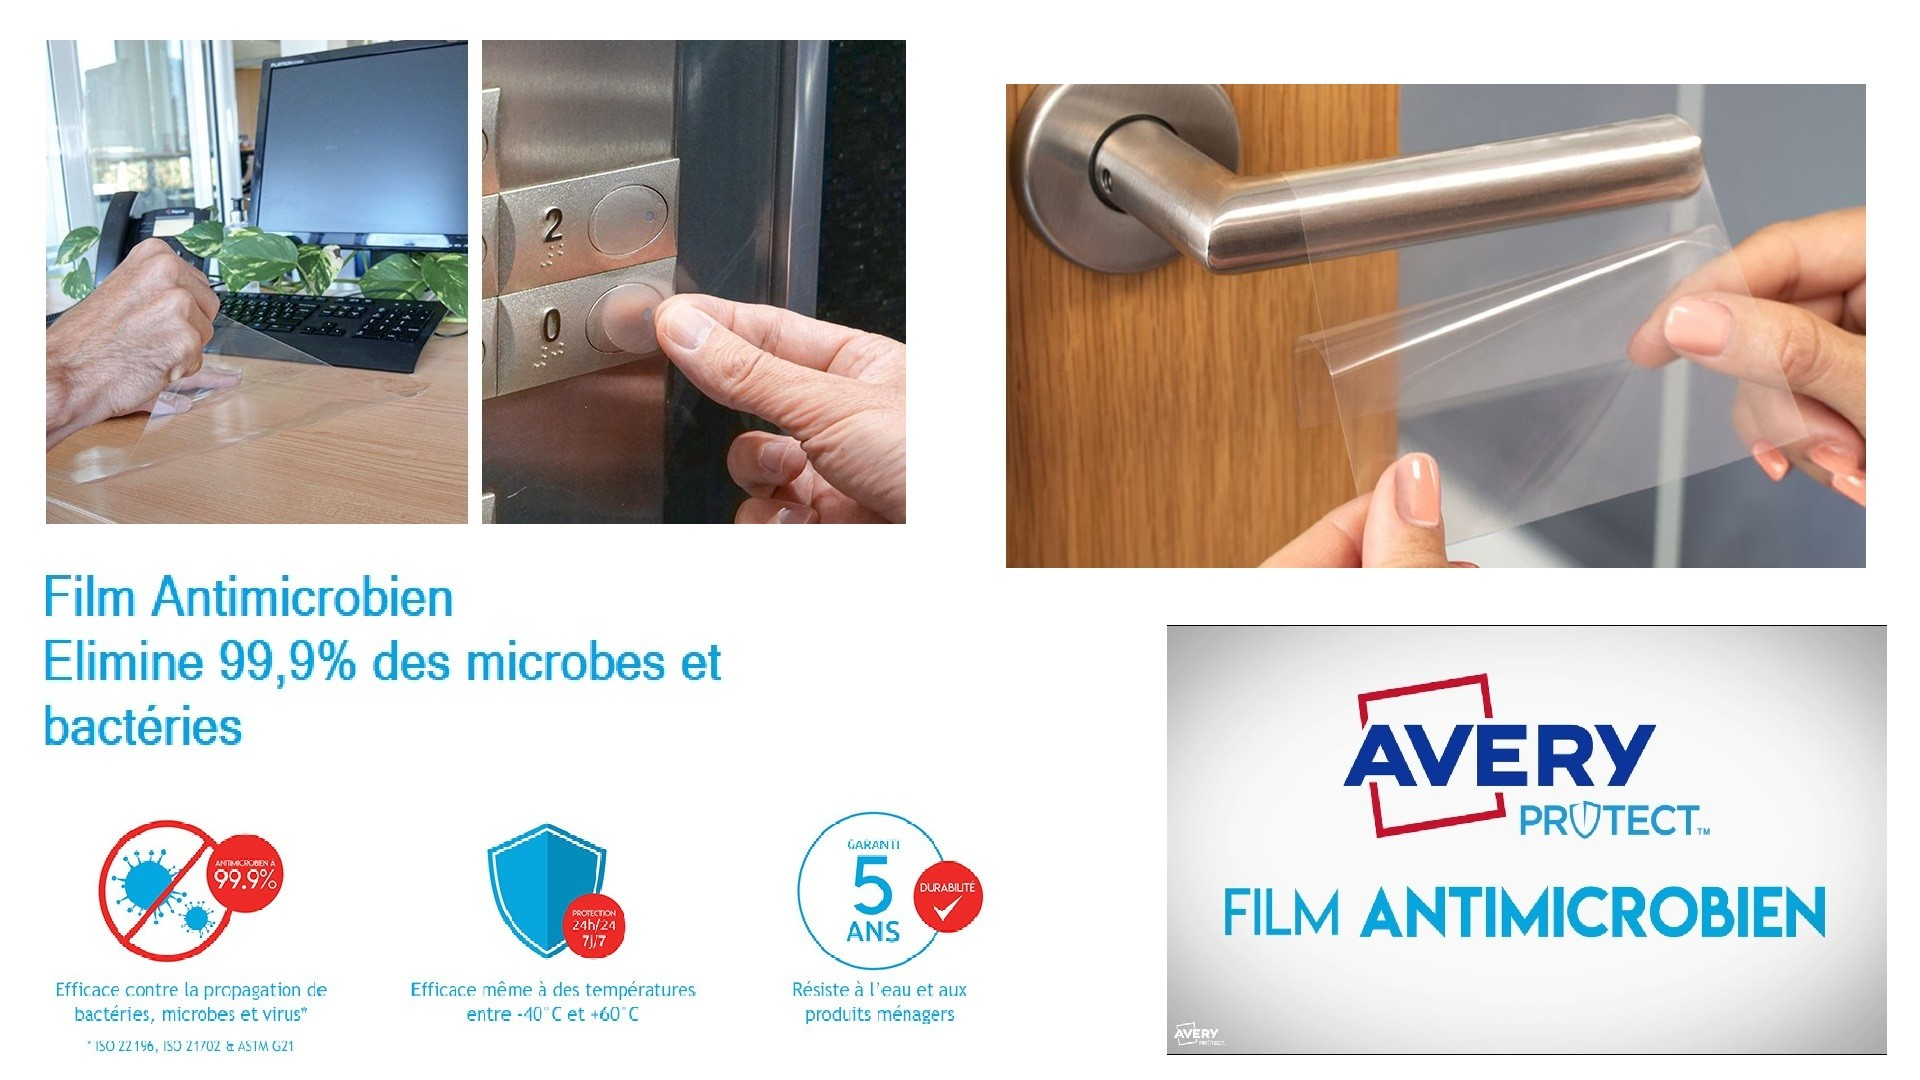 AVERY FILM ANTIMICROBIEN